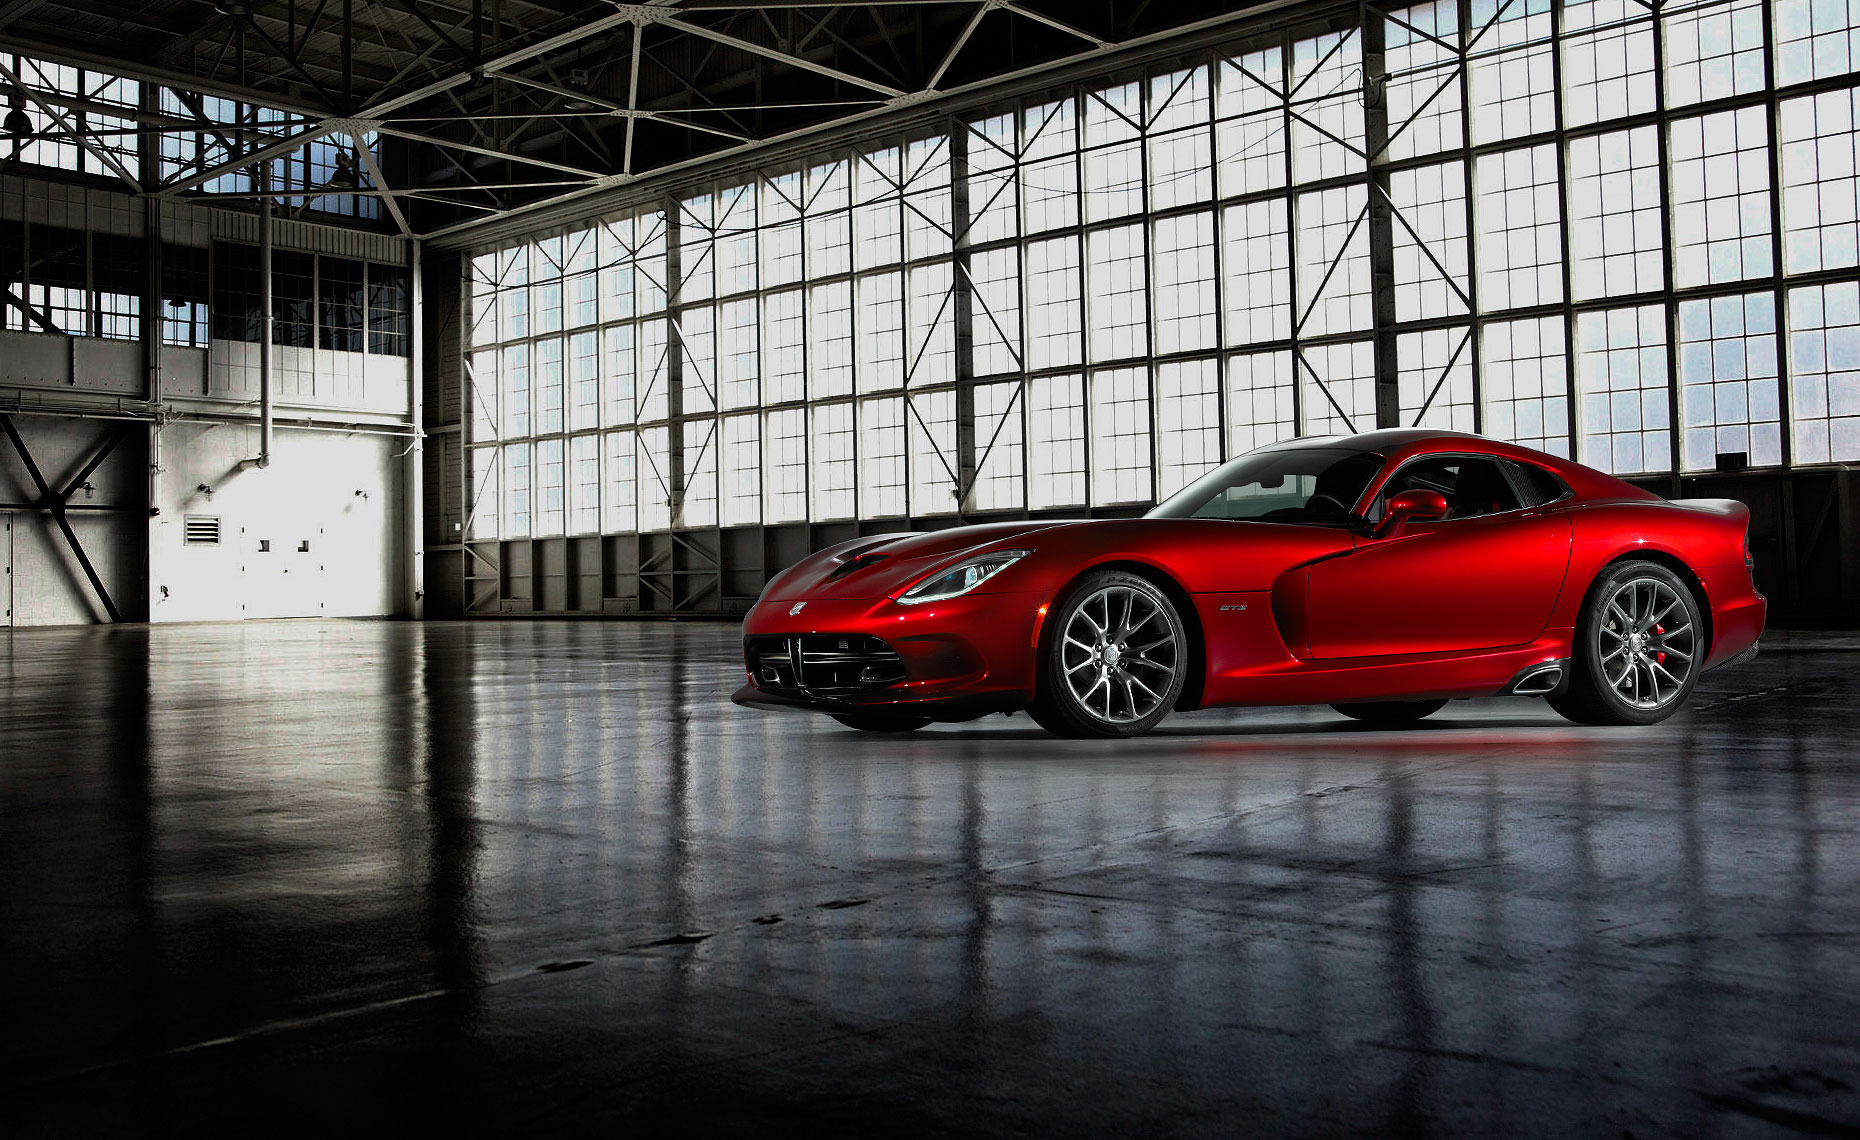 2013 viper srt-warehouse location.jpg